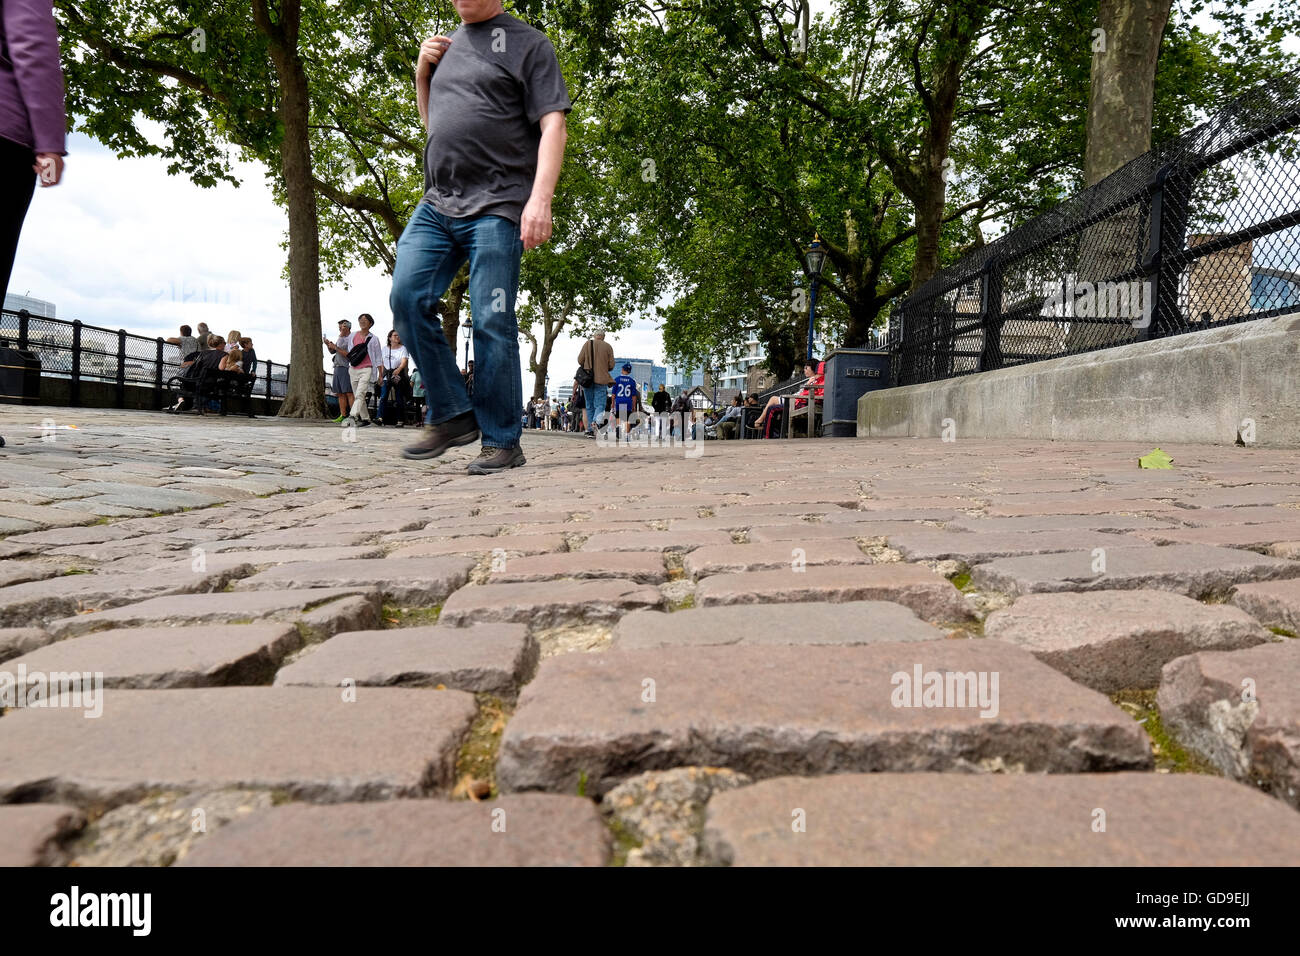 An worms eye view of the paving on Victoria Embankment along the Thames river London. - Stock Image